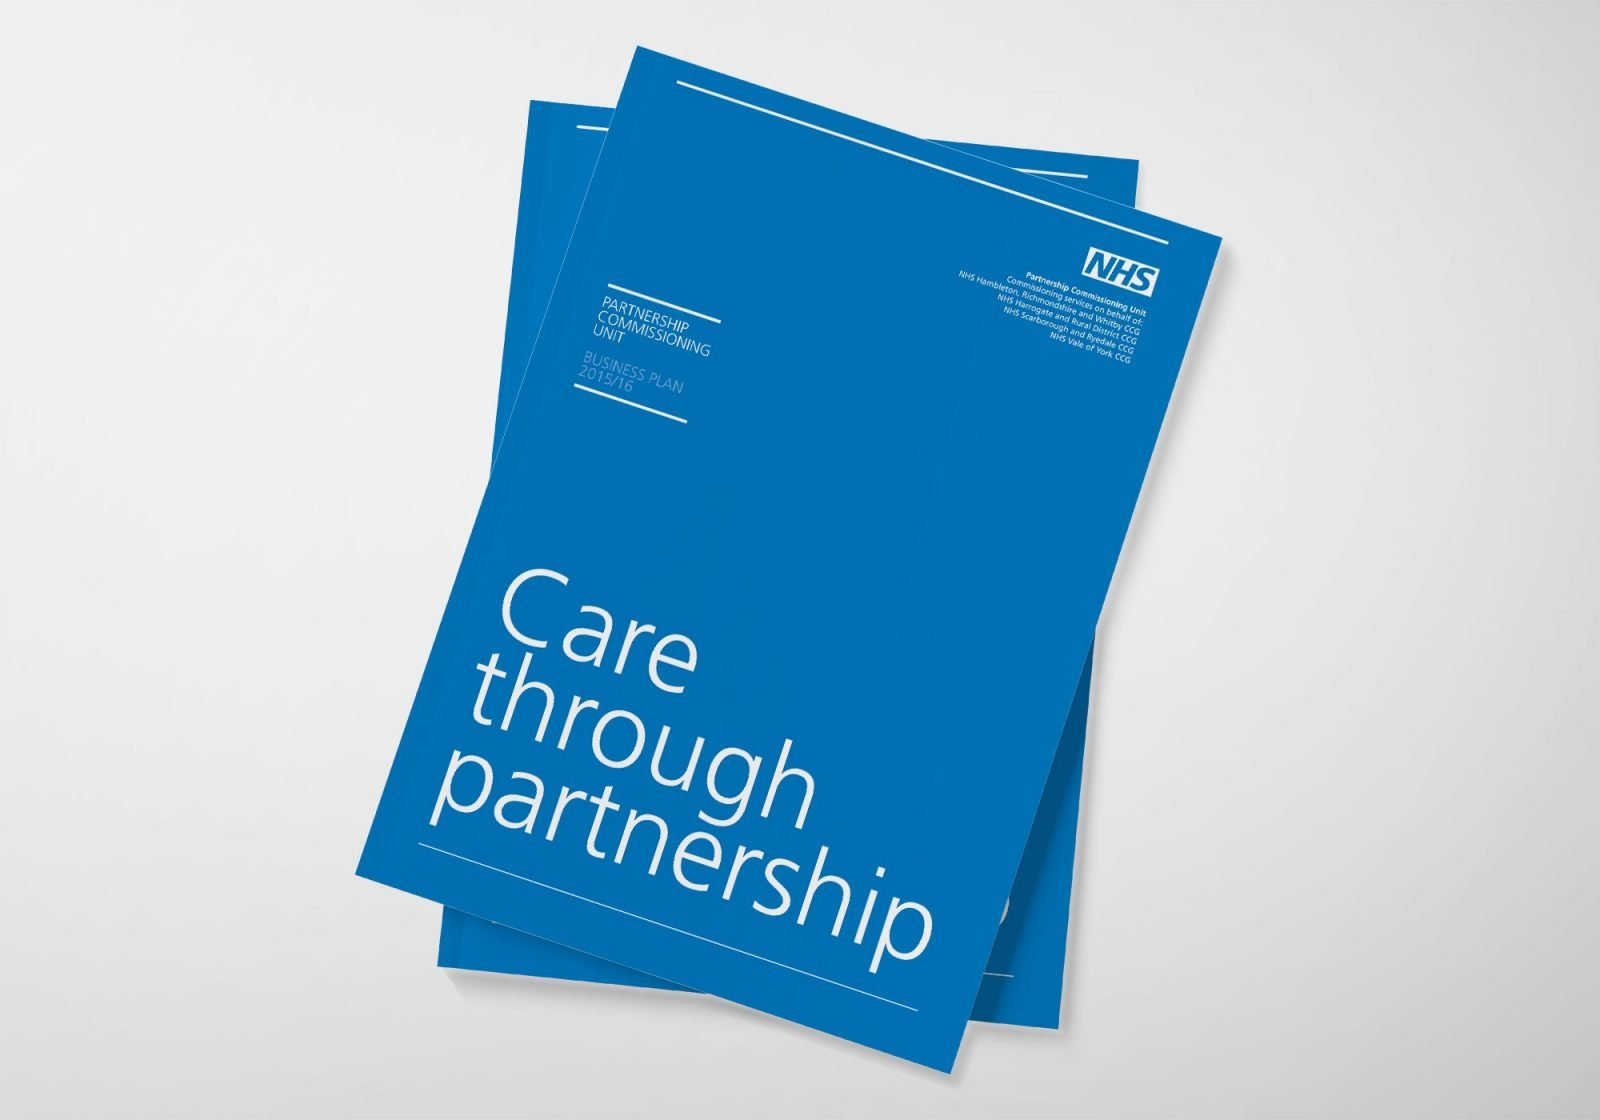 An A4 brochure design for the NHS Partnership Commissioning Unit showing the cover